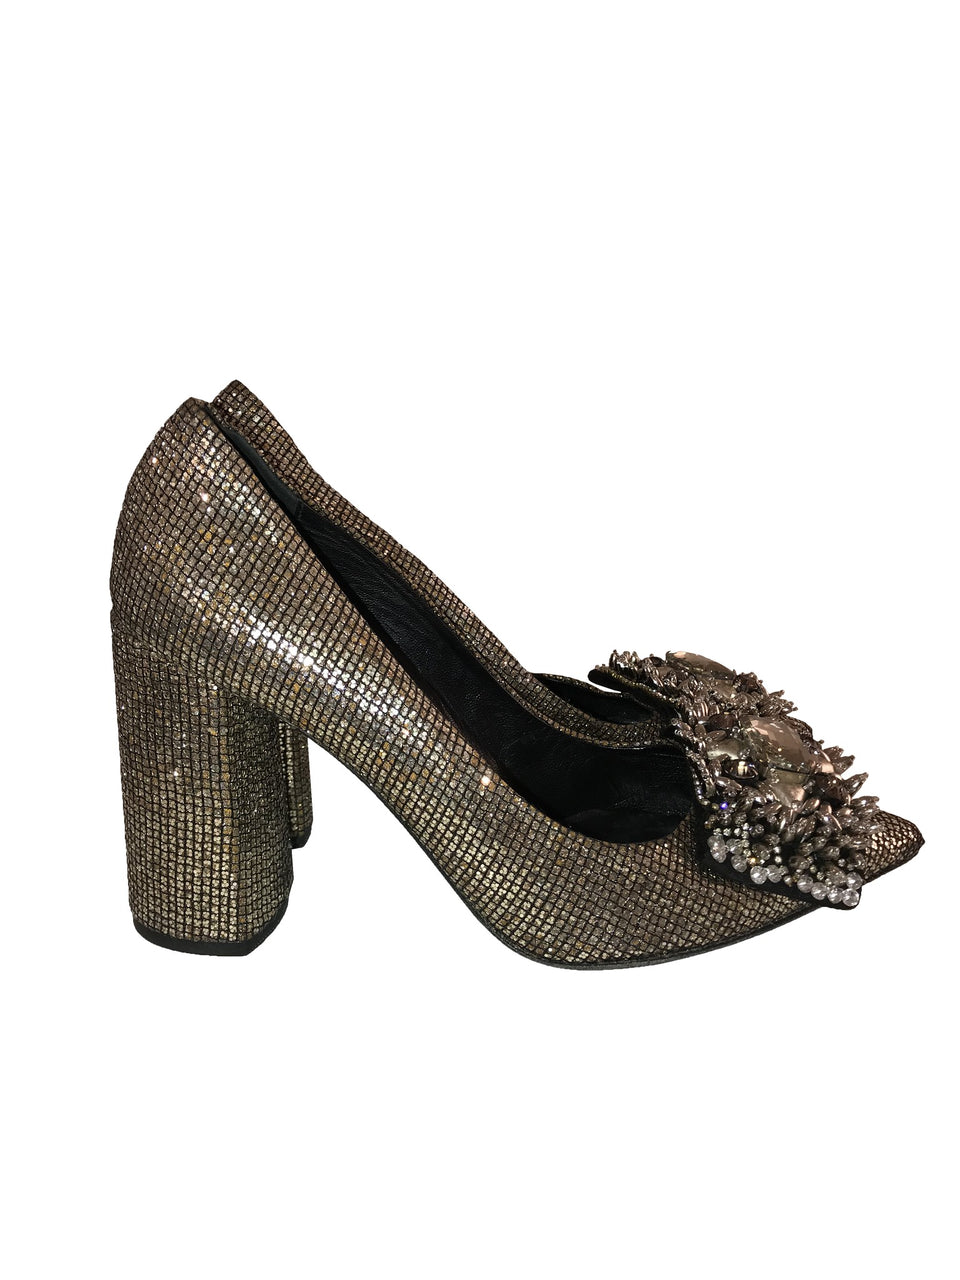 Strategia Gold Embellished Heels